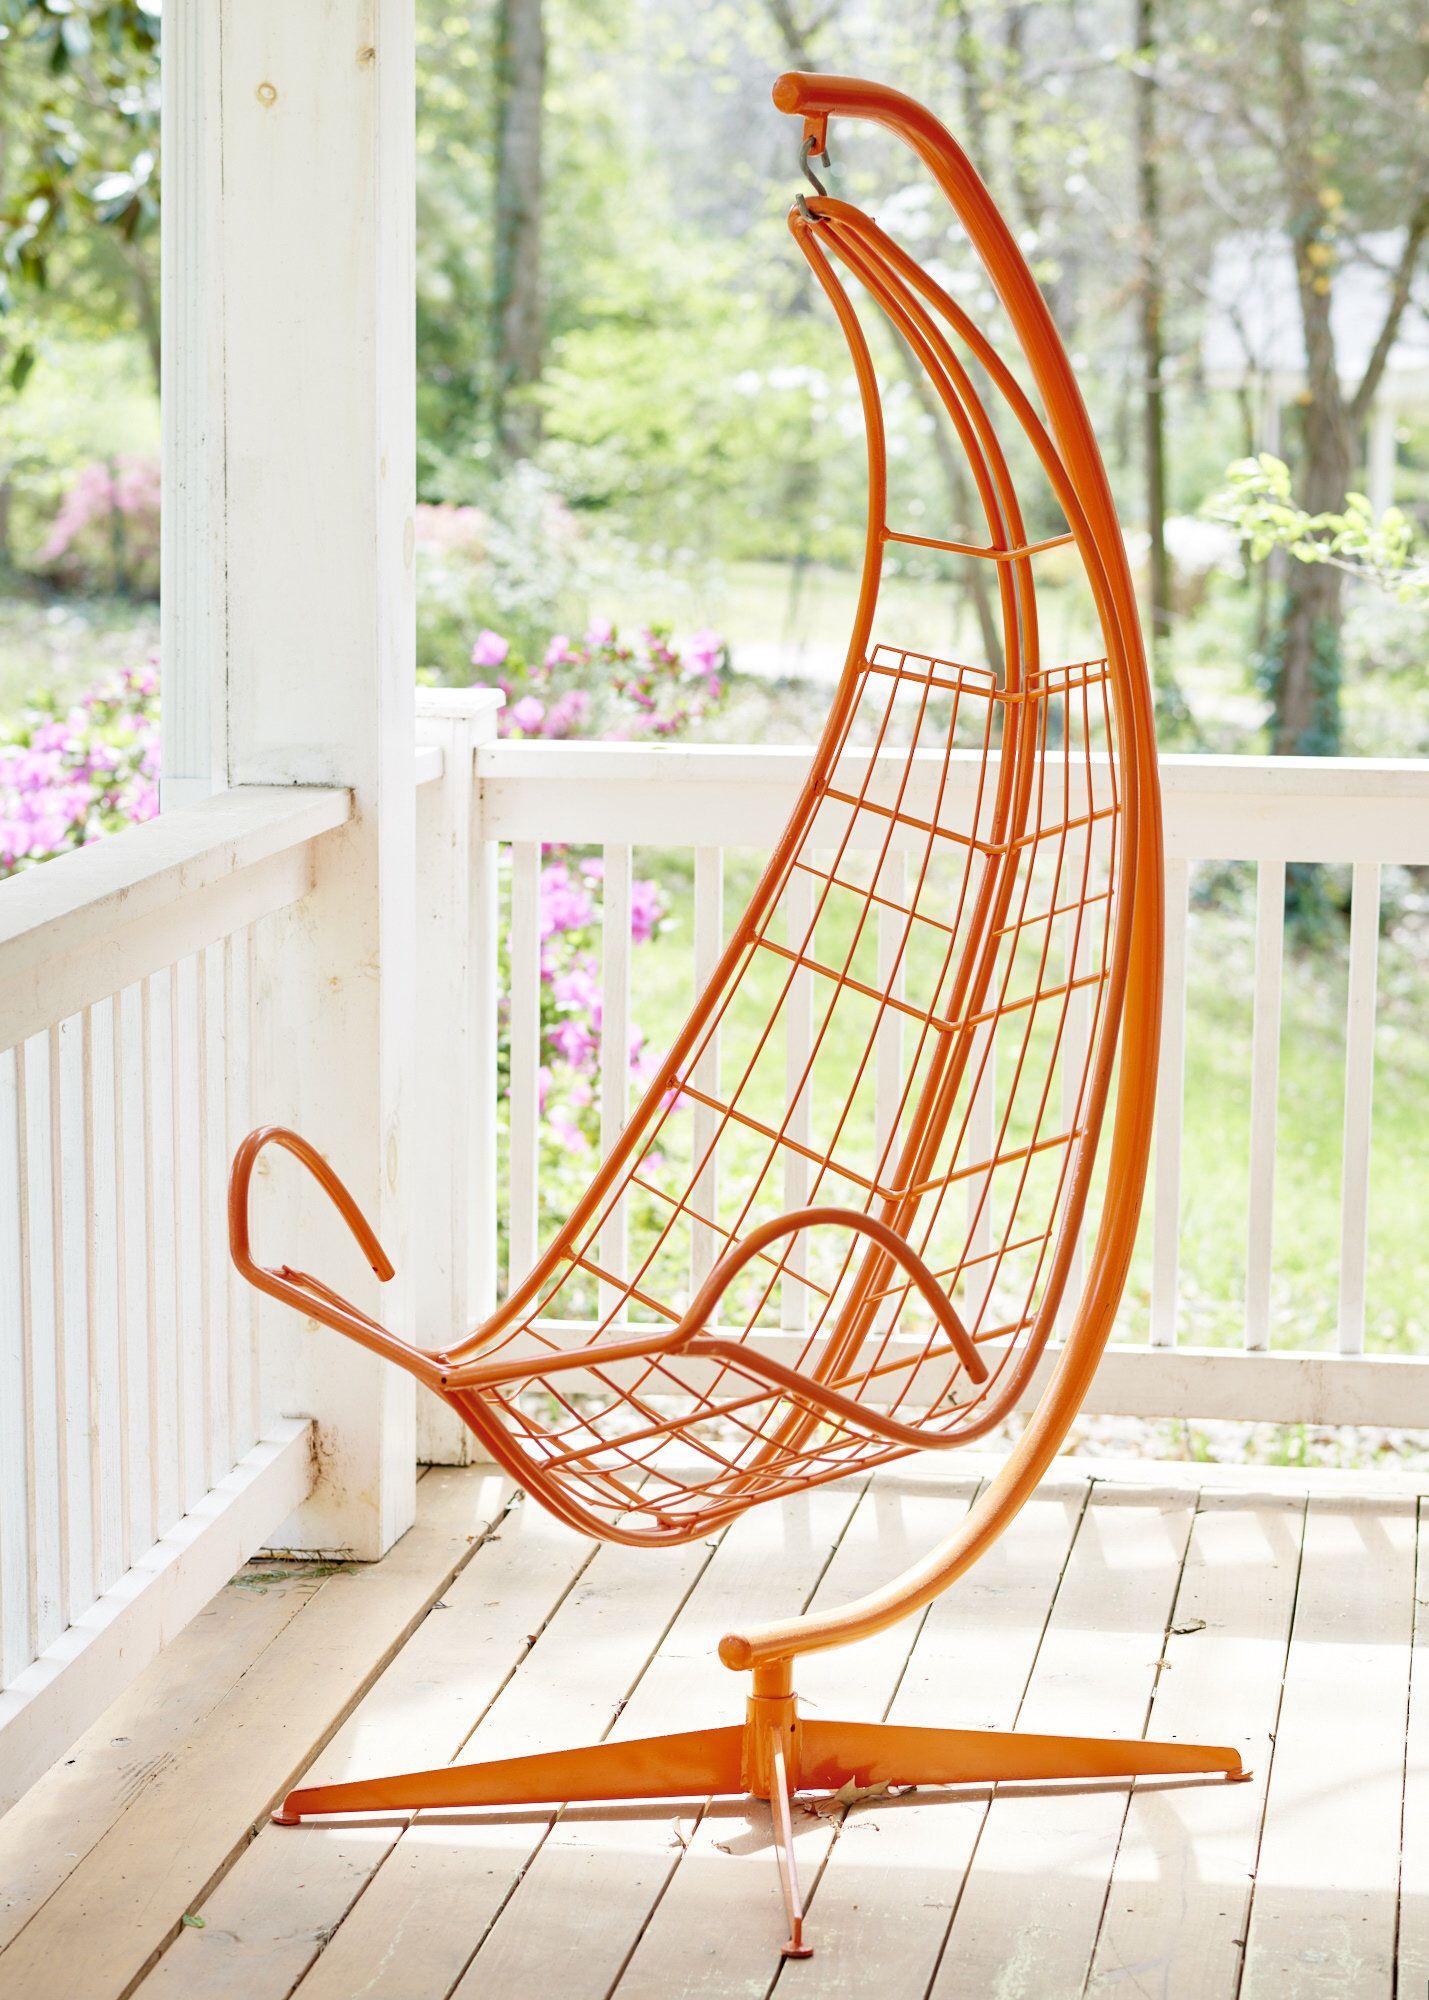 Homecrest Patio Furniture Replacement Slings: Family Leisure Patio Furniture Nashville Tn